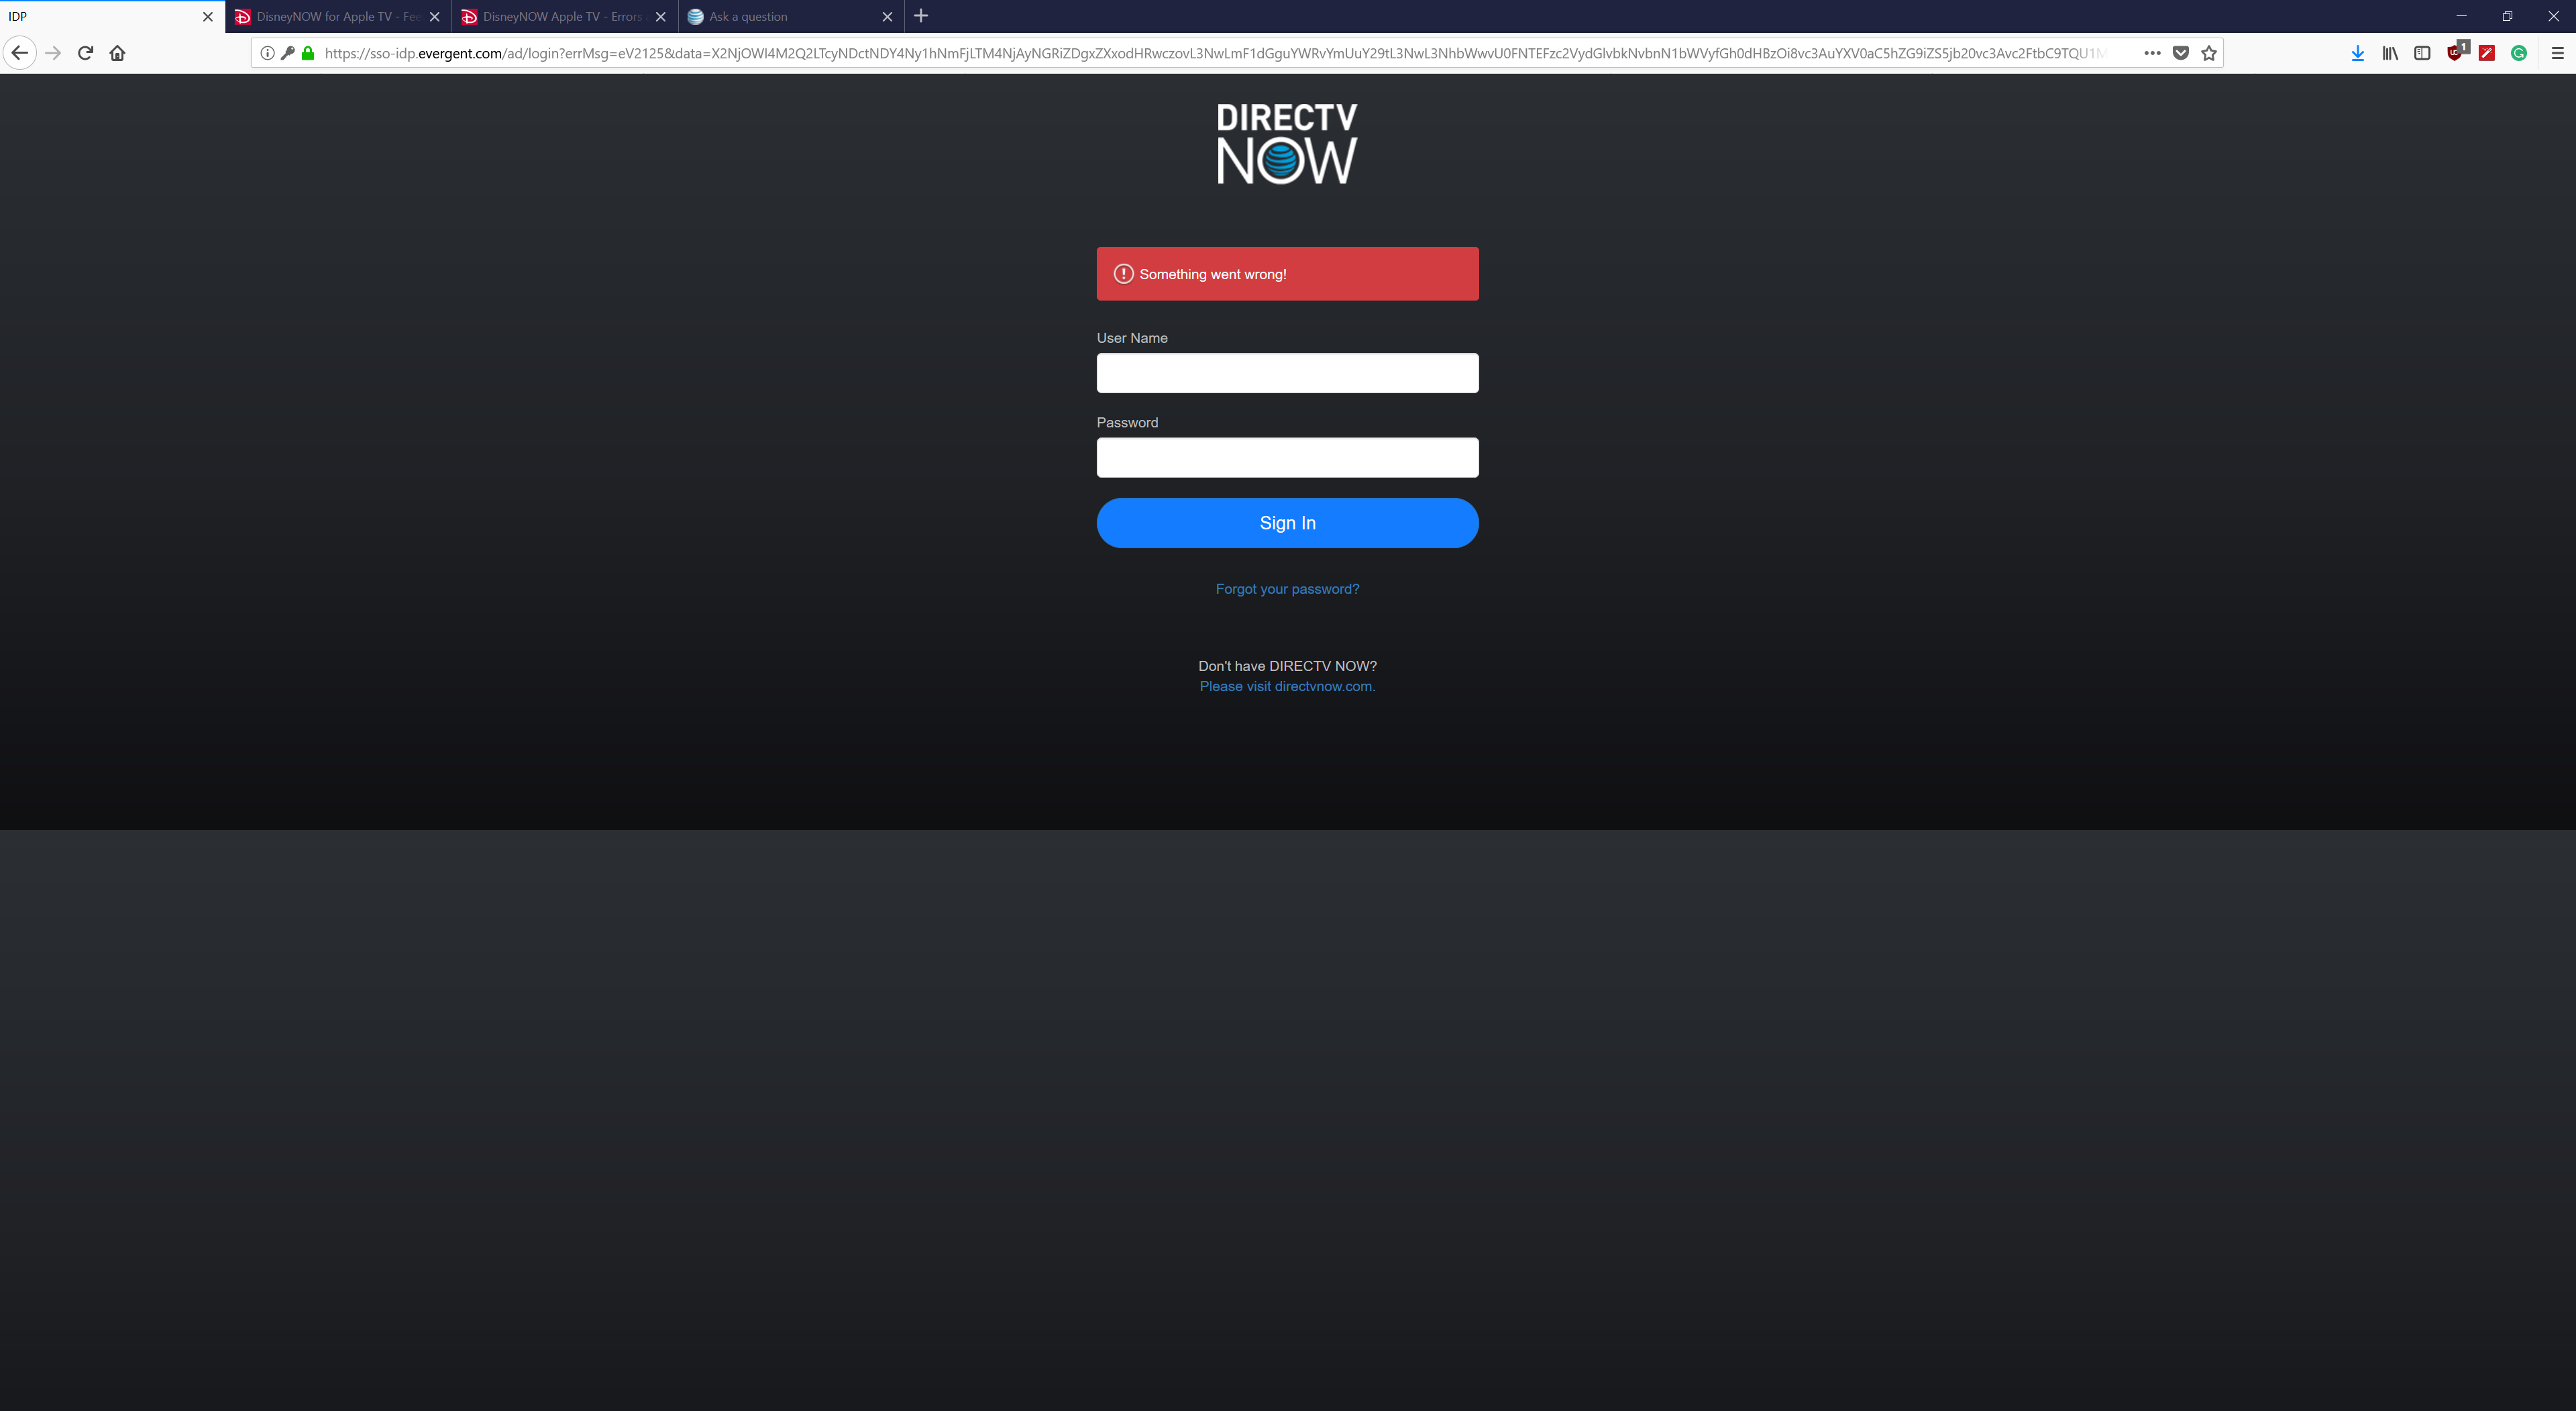 Disneynow Login Not Working With Directvnow On Ios Devices At T Community Forums